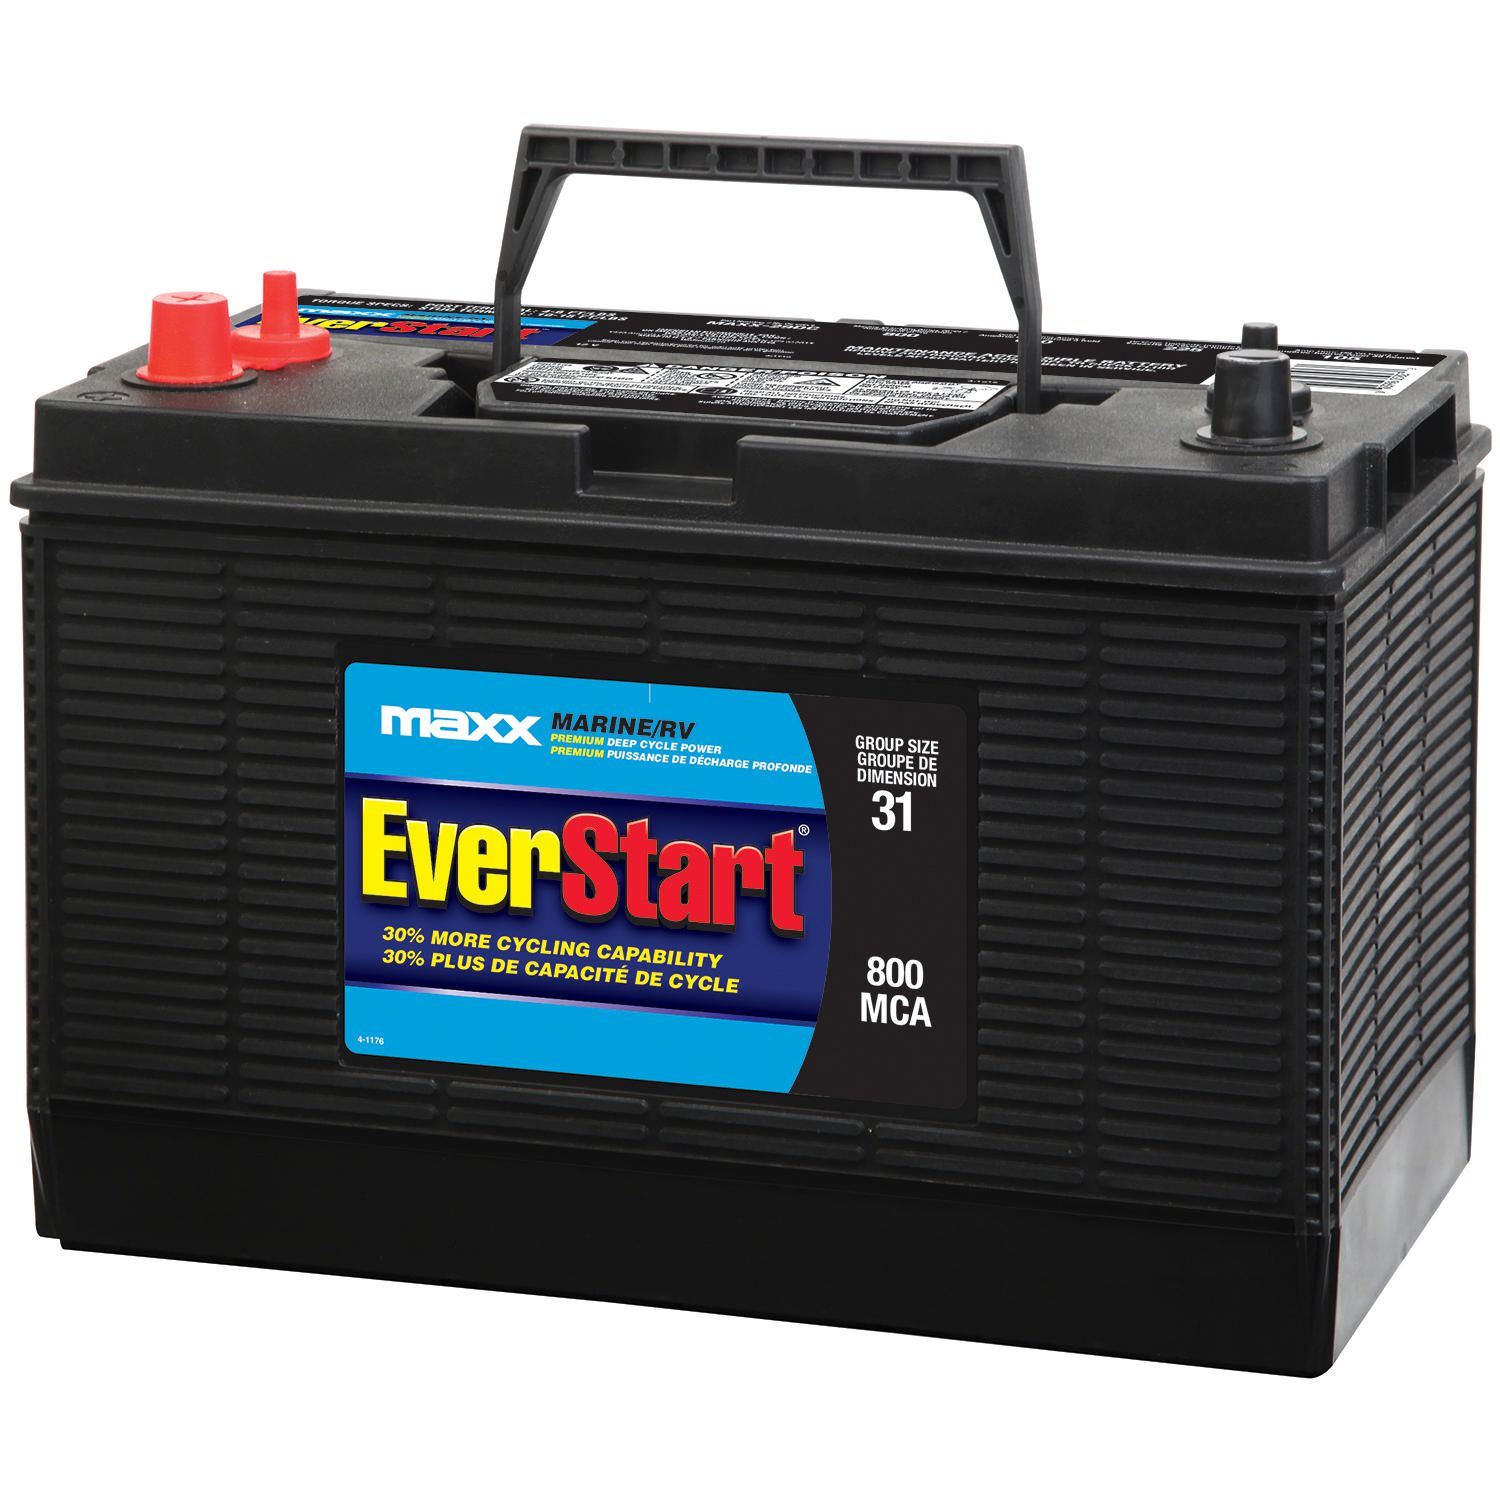 Everstart Marine Rv Battery Premium Deep Cycle Power Maxx